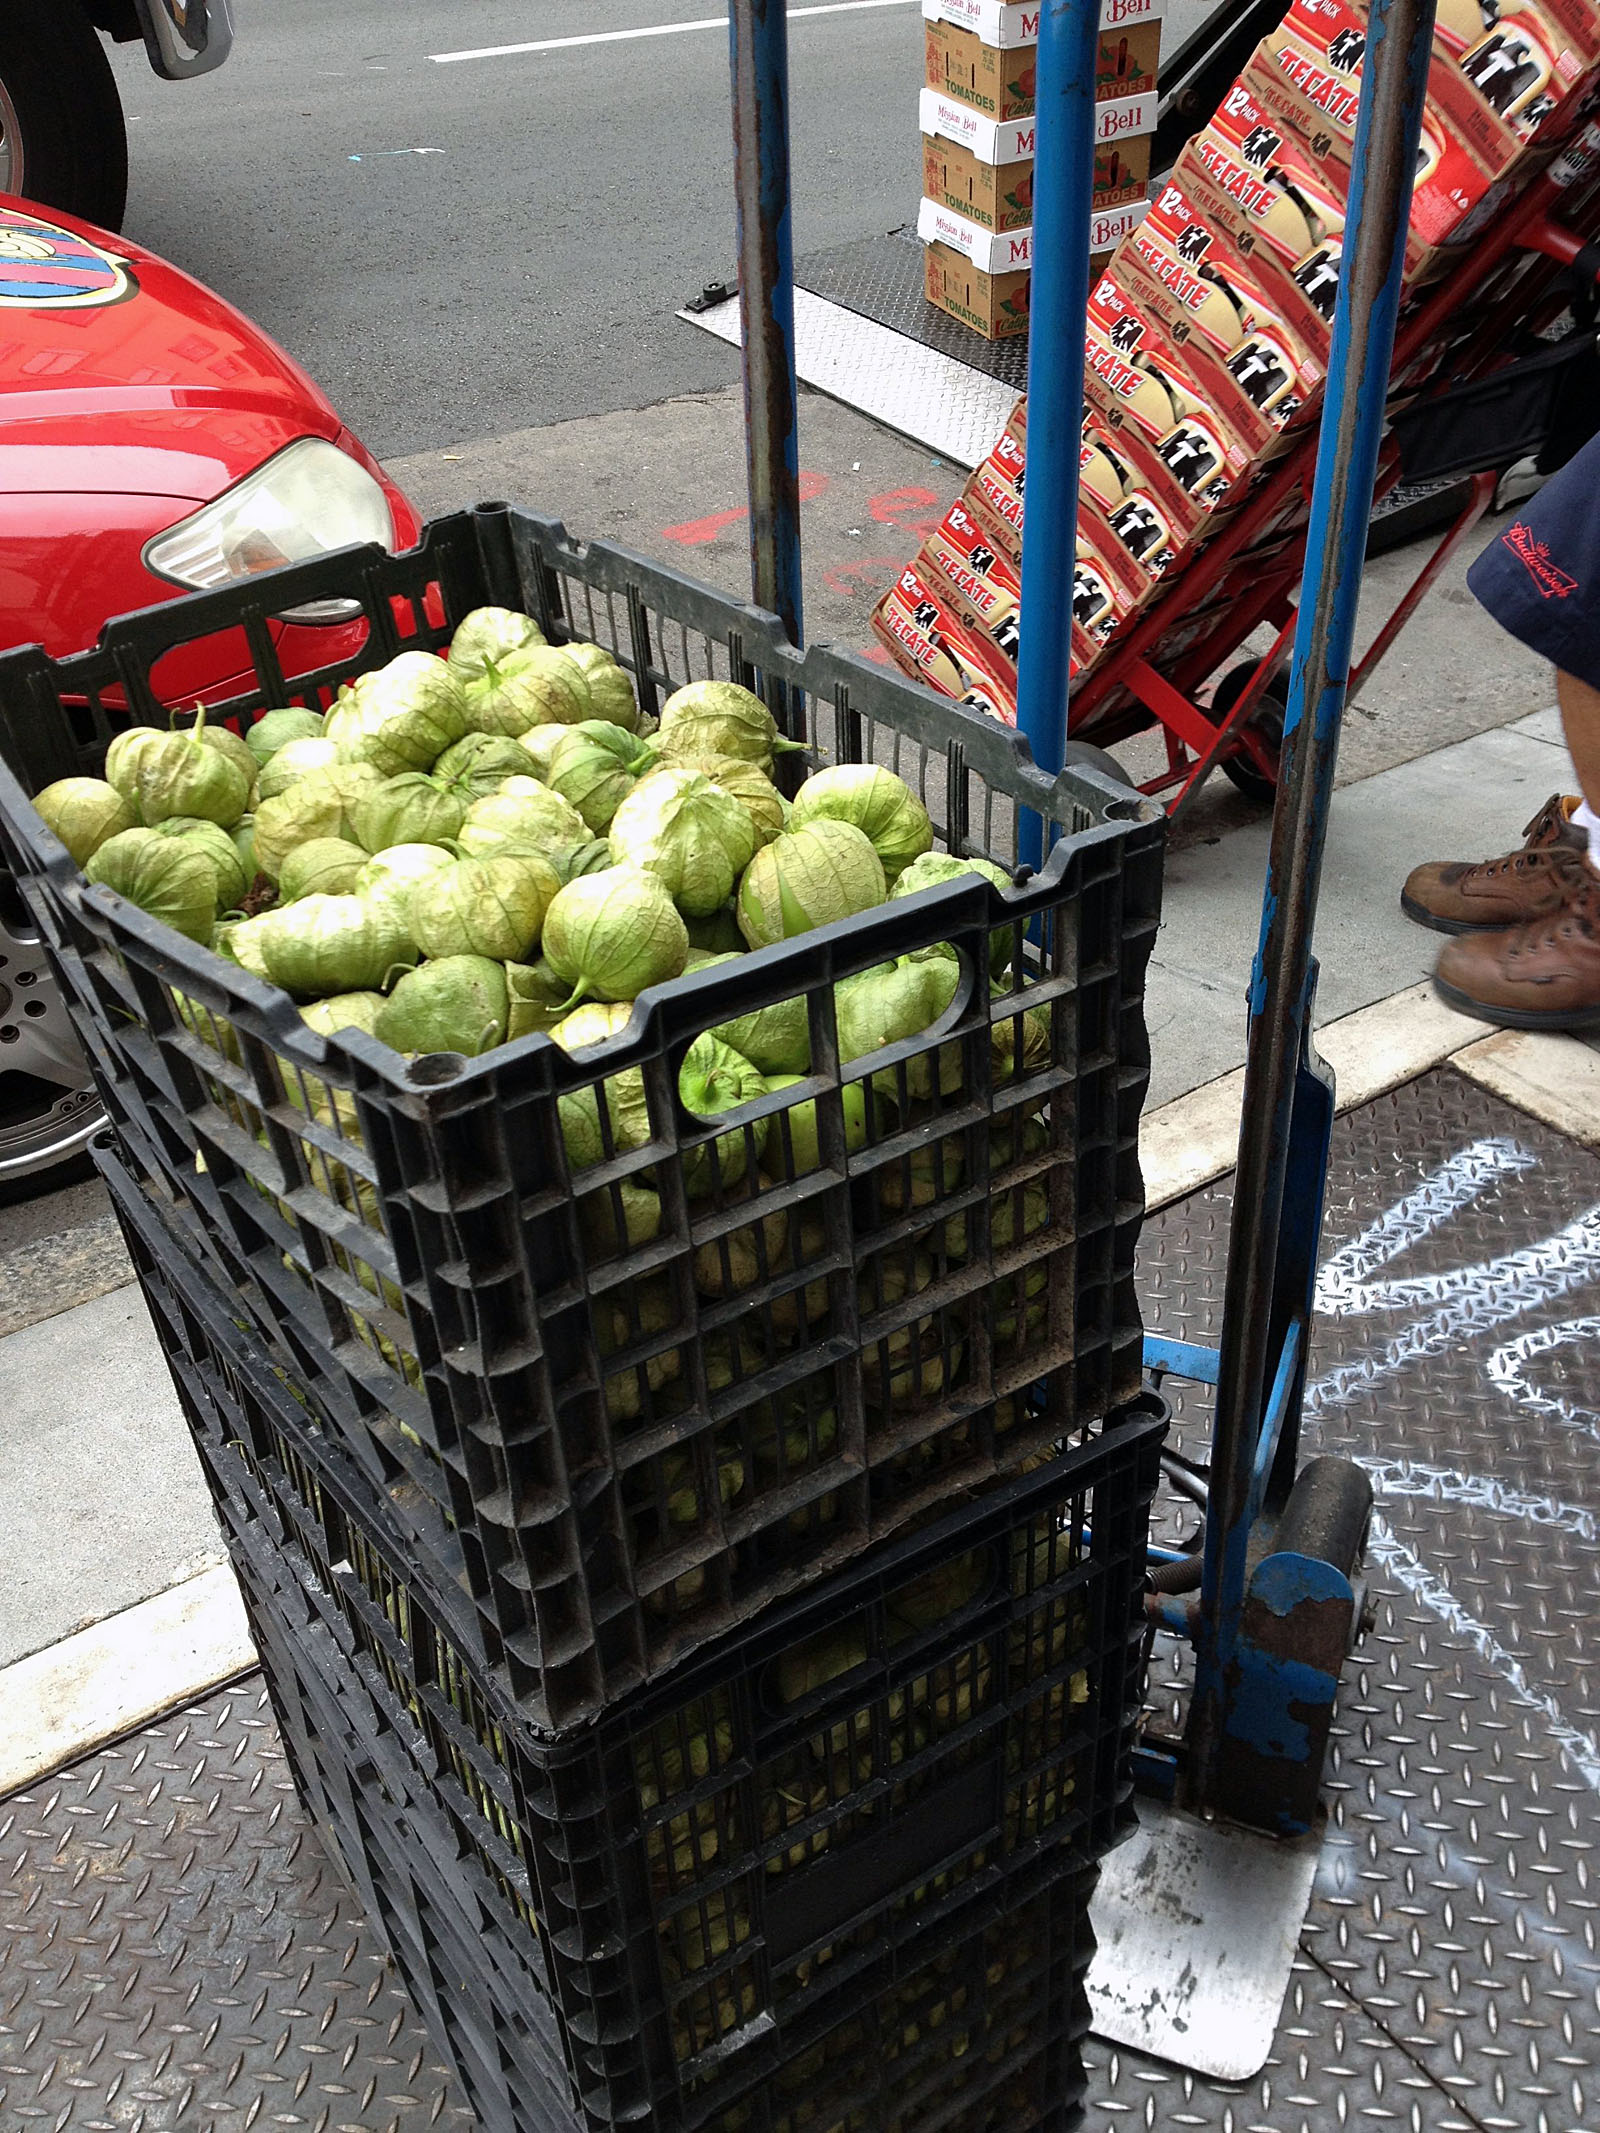 SNAP: Tomatillo Delivery! - Mission Local